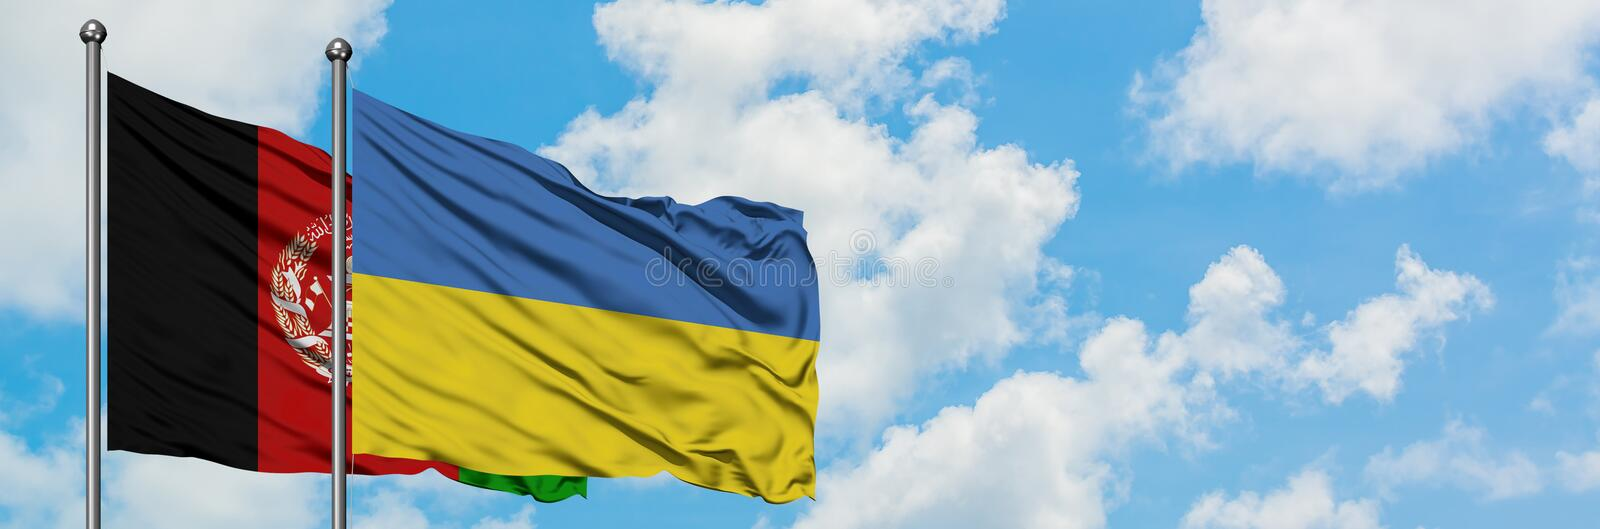 Afghanistan and Ukraine flag waving in the wind against white cloudy blue sky together. Diplomacy concept, international relations.  stock photography